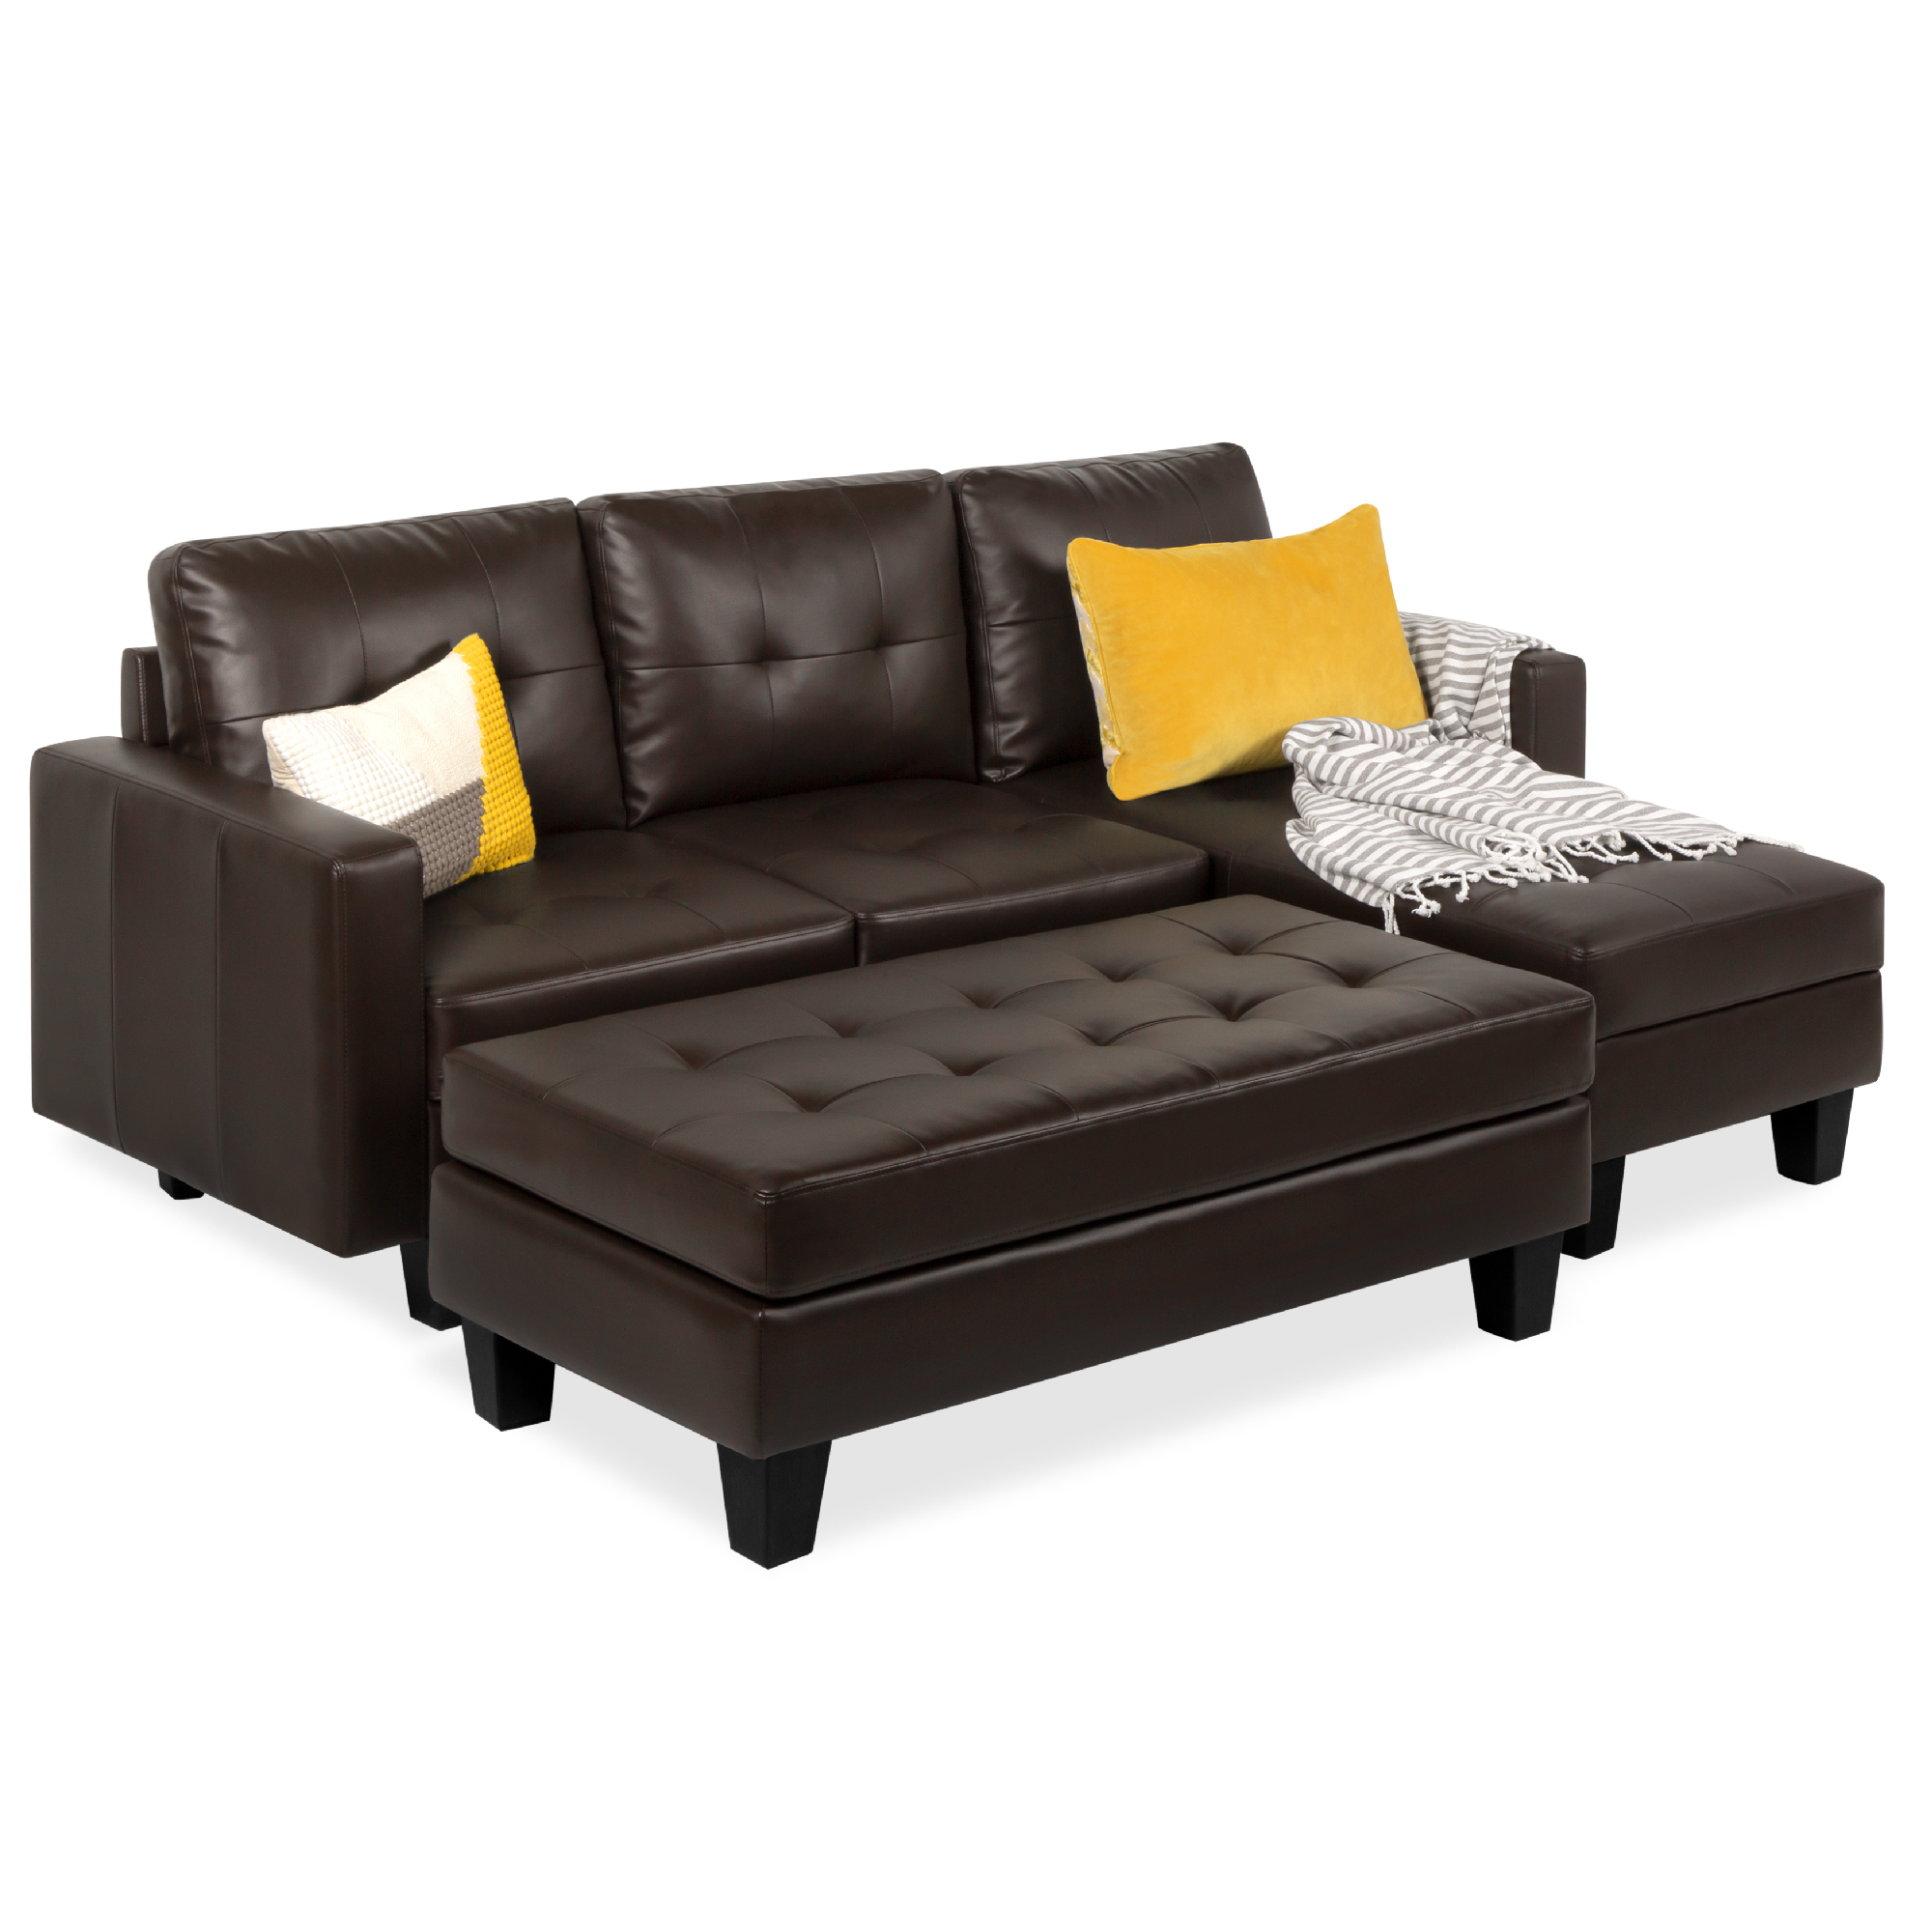 best choice products 3 seat l shape tufted faux leather sectional sofa couch set w chaise lounge ottoman bench black